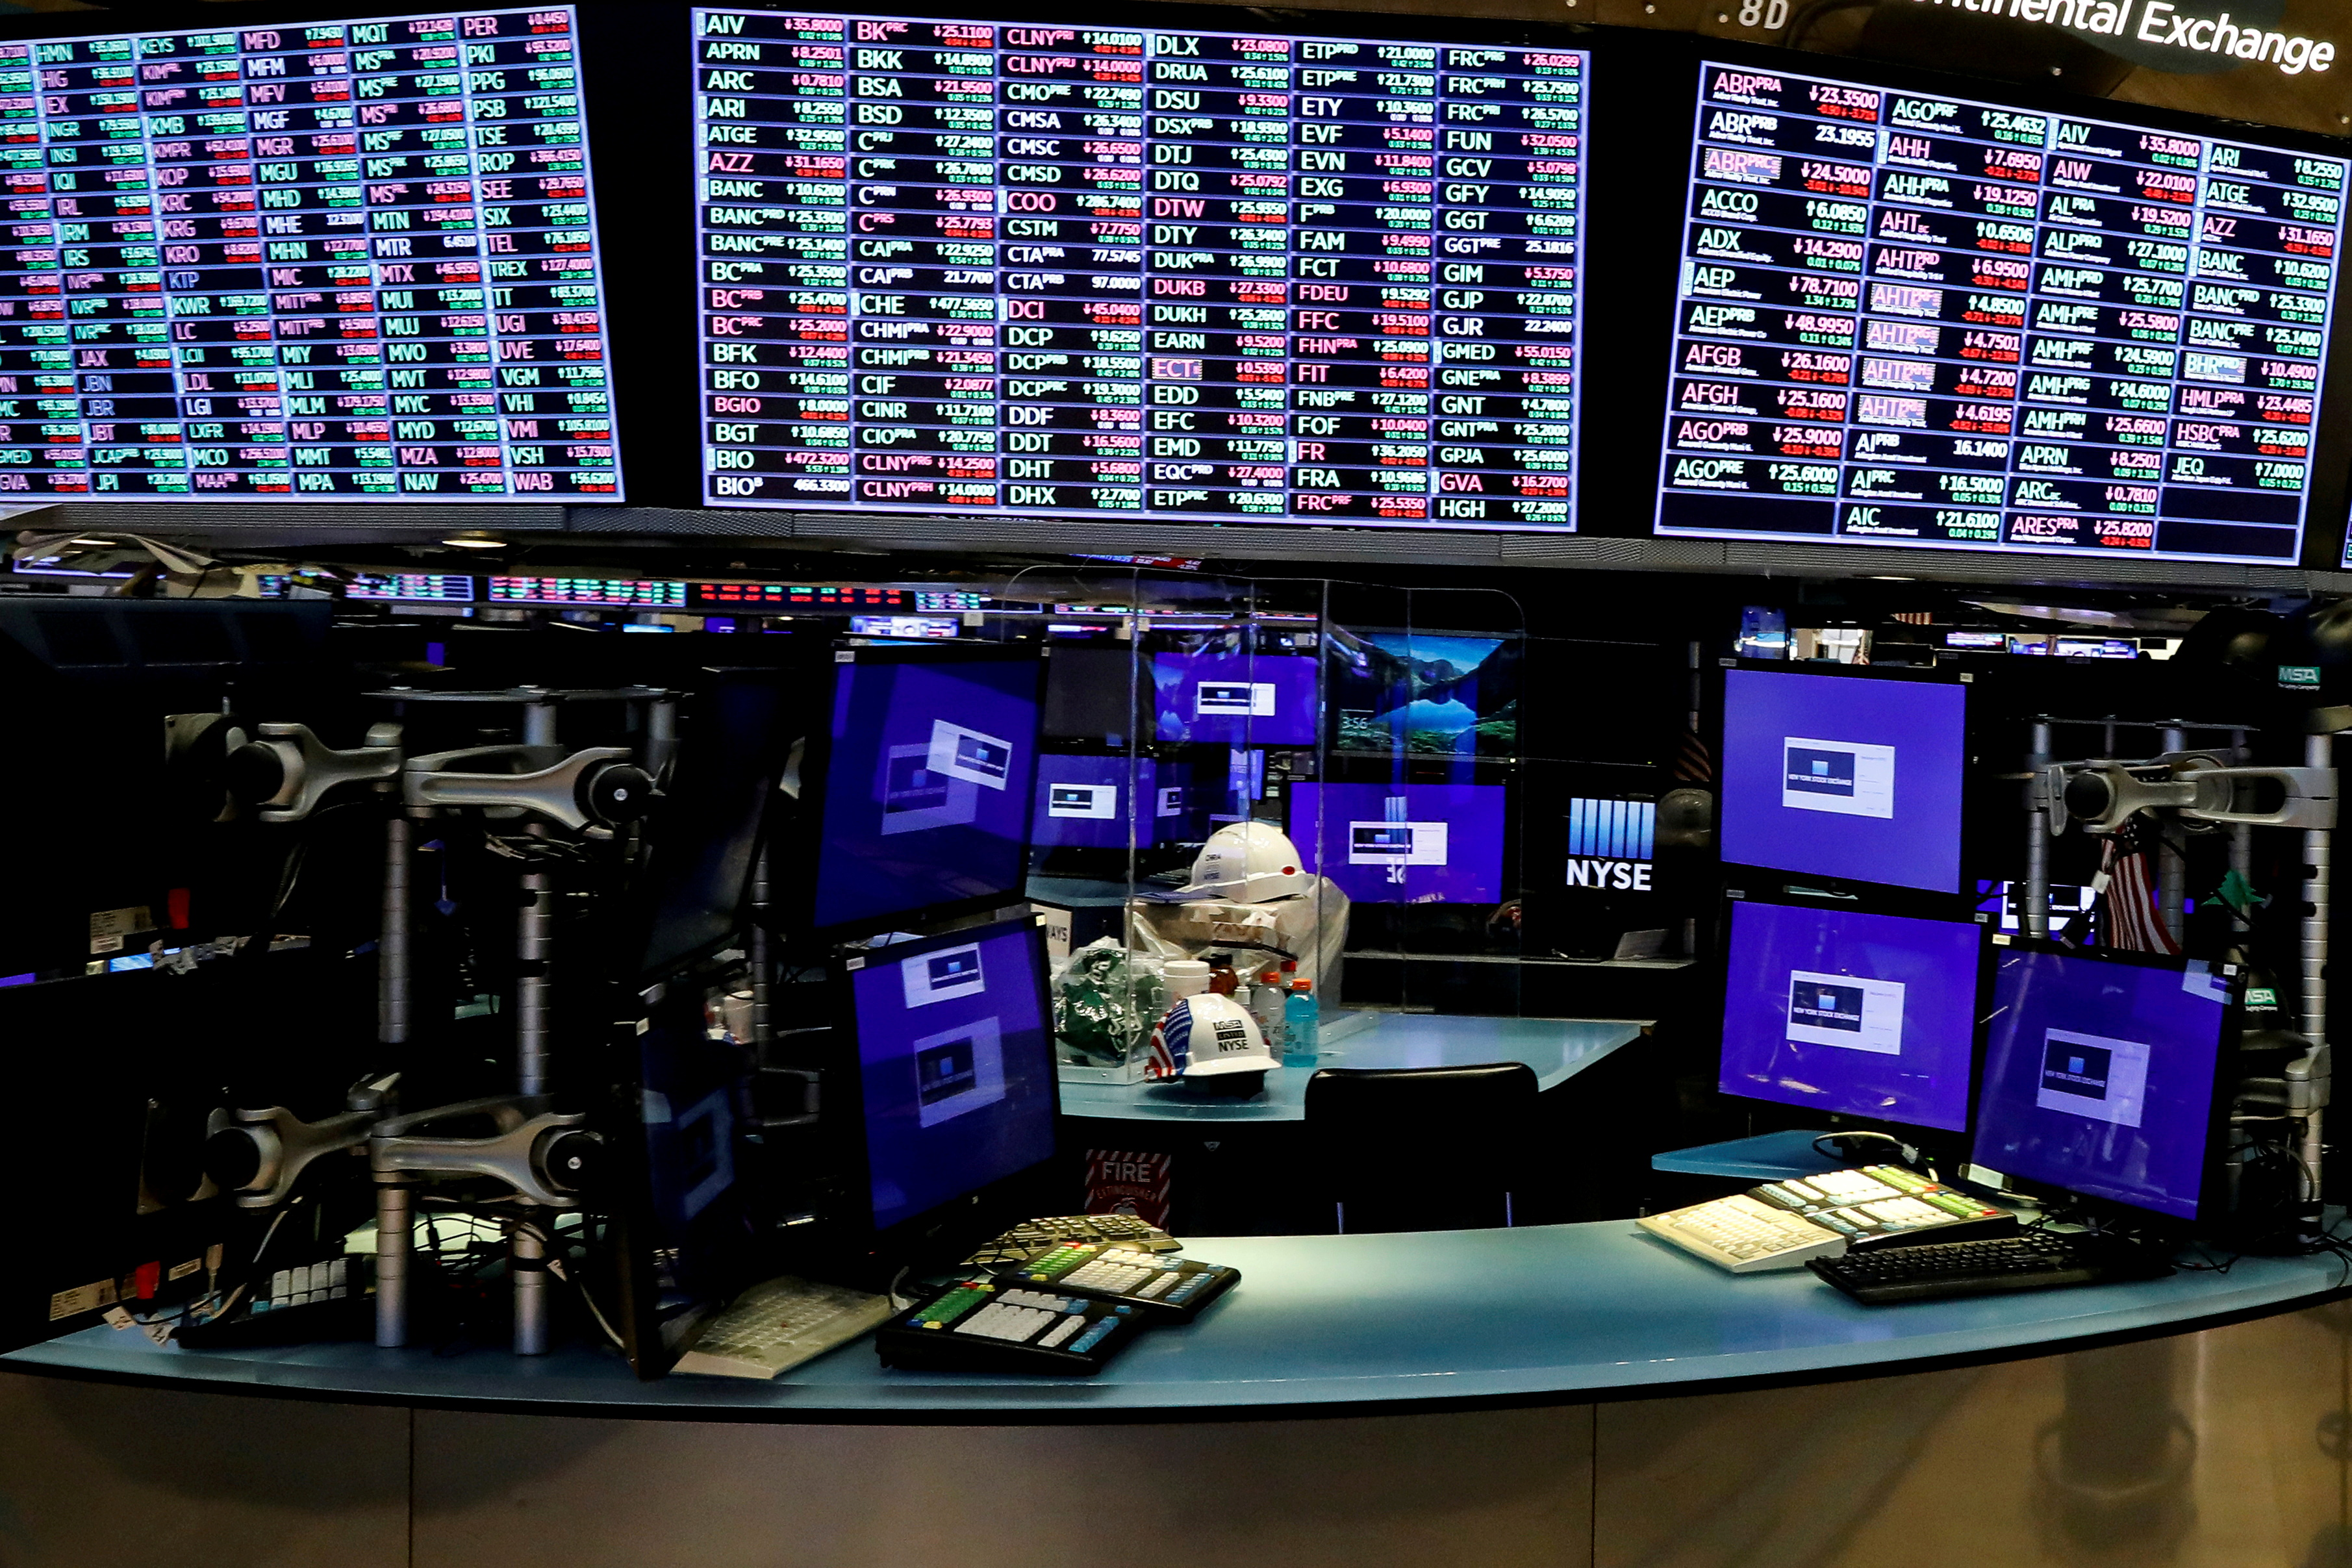 Dividers are seen inside a trading post on the trading floor as preparations are made for the return to trading at the New York Stock Exchange (NYSE), May 22, 2020. REUTERS/Brendan McDermid/File Photo